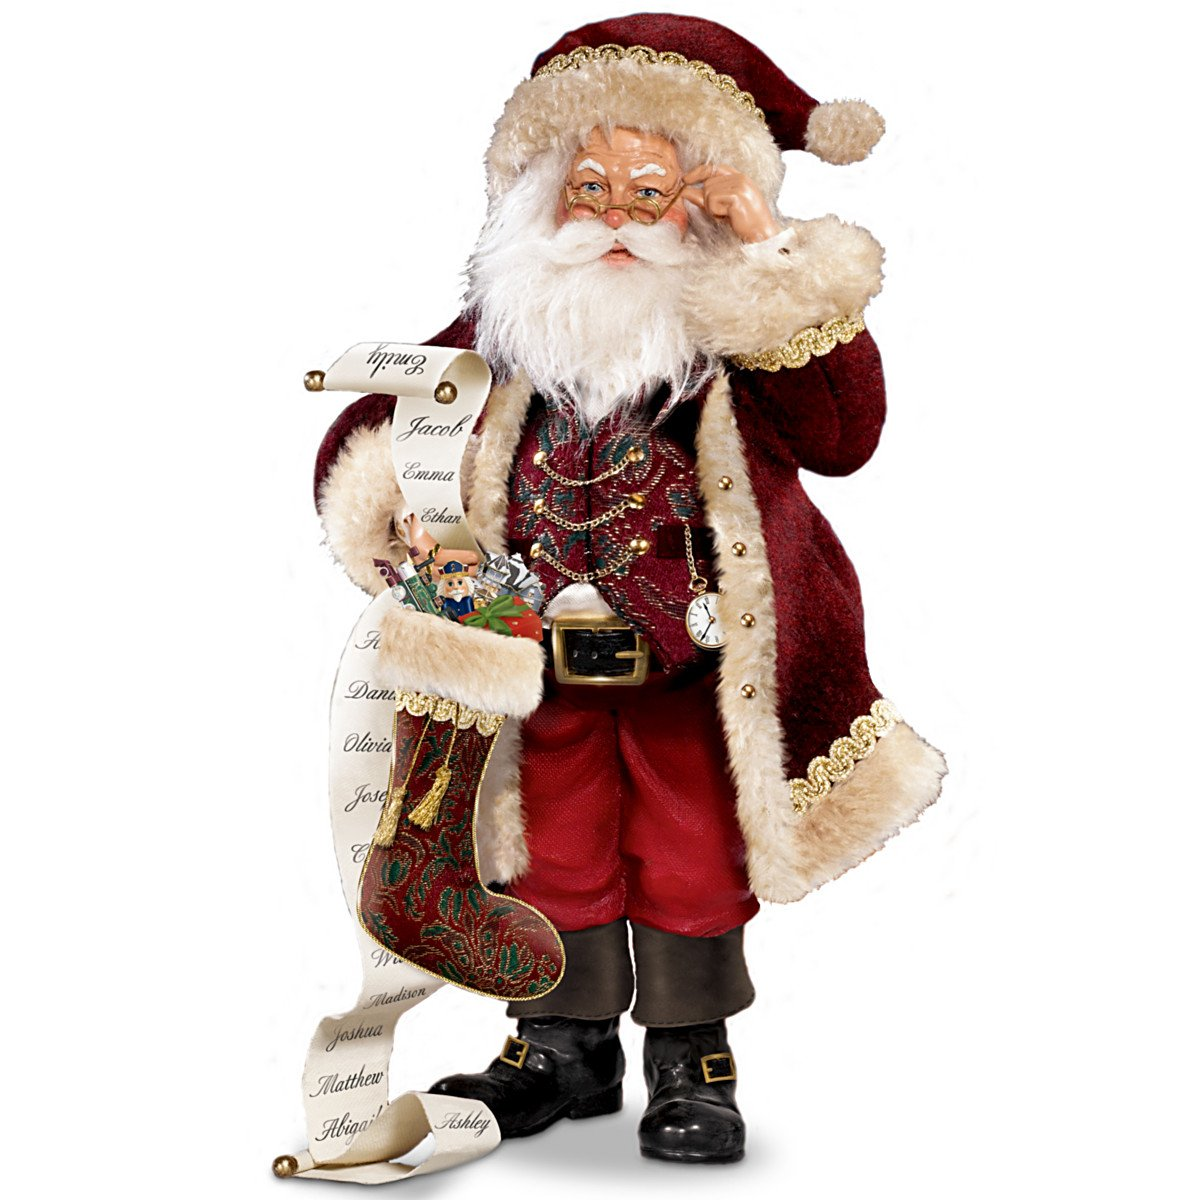 Santa claus figurines and ceramic collectibles